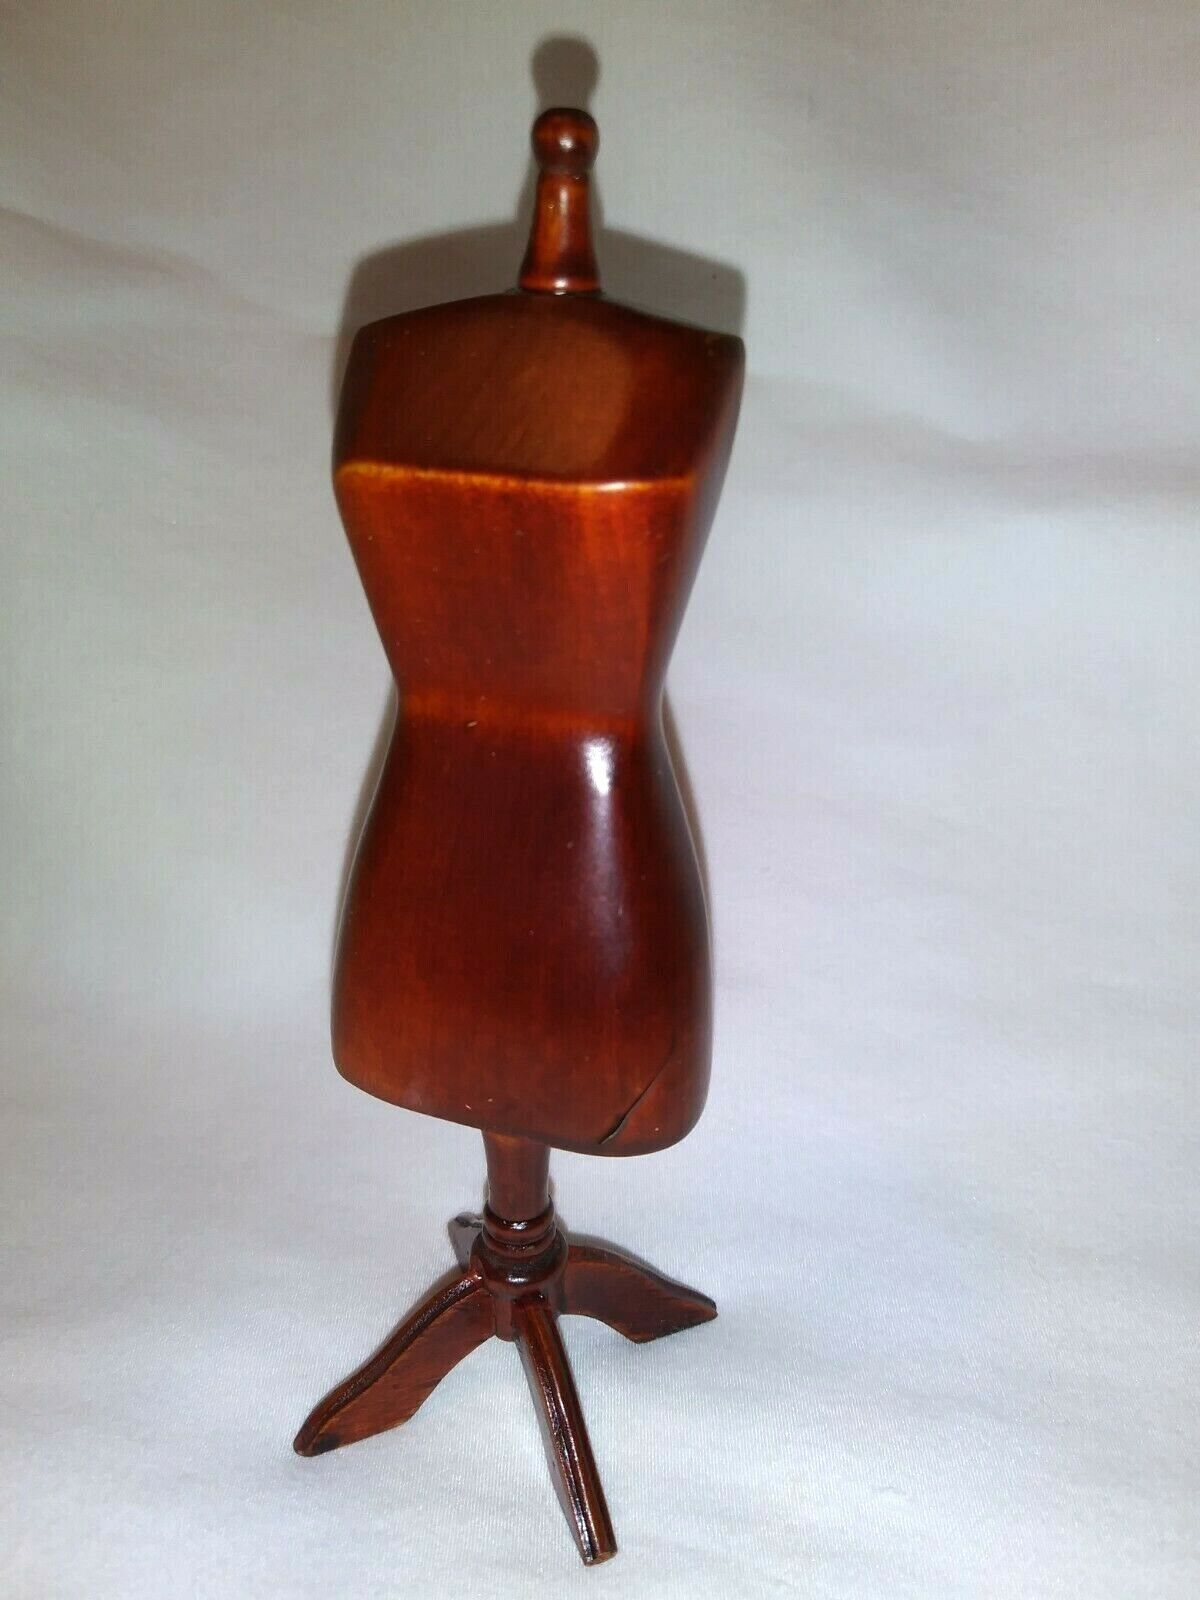 Dollhouse Sewing Room Dress Form Mannequin - Wooden Miniature  - $7.00